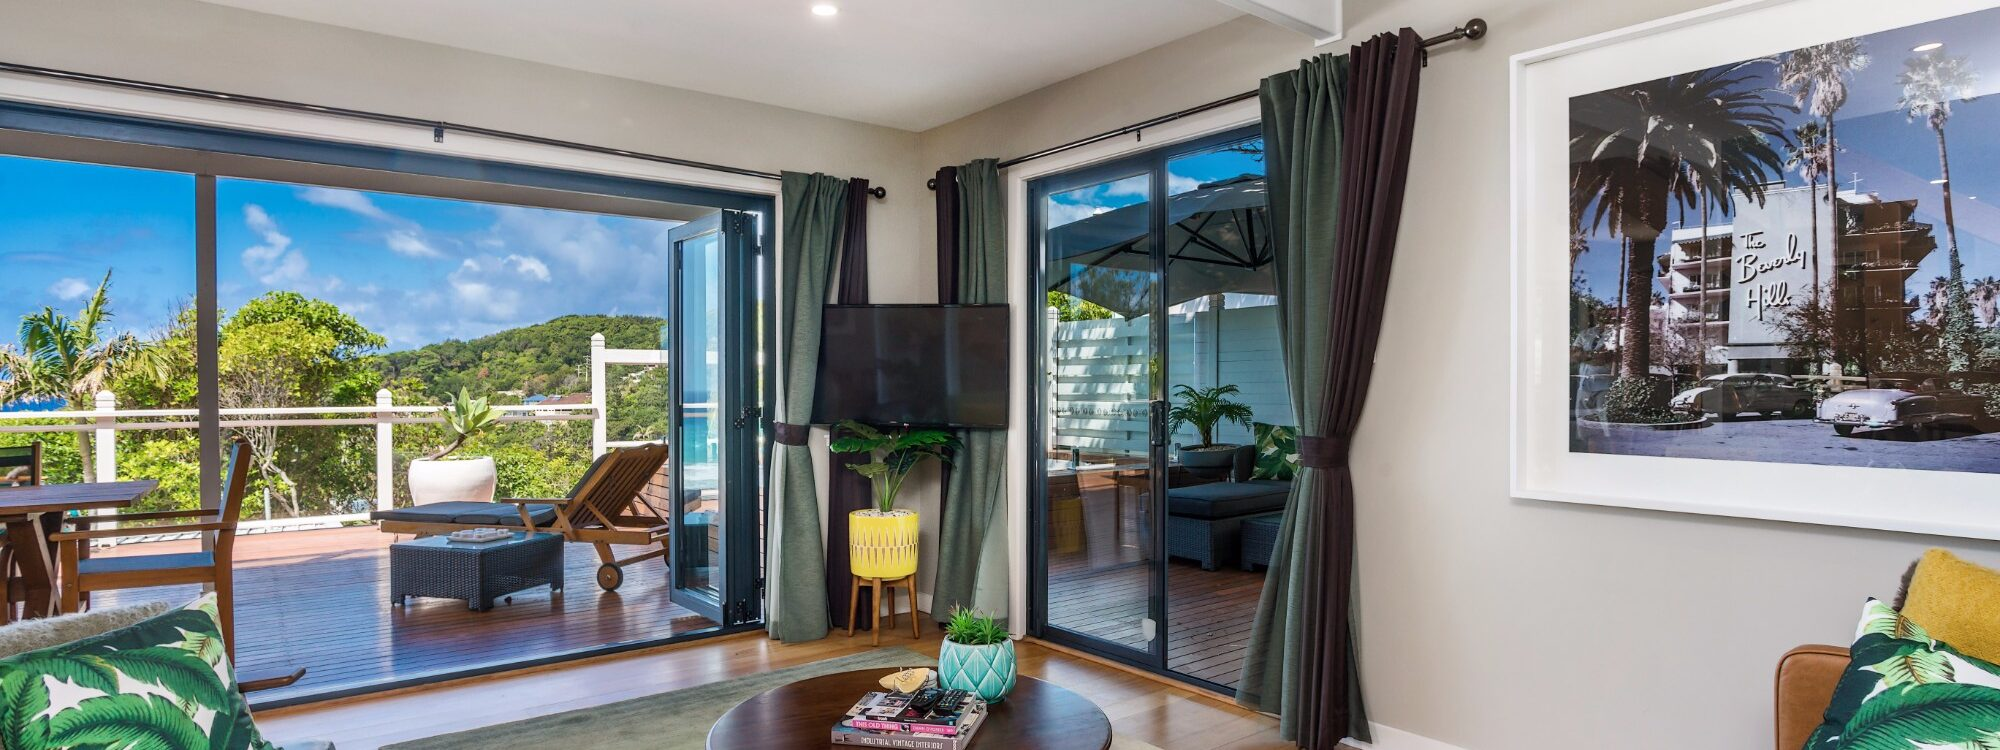 The Palms at Byron - Wategos Beach - Byron Bay - Lounge room